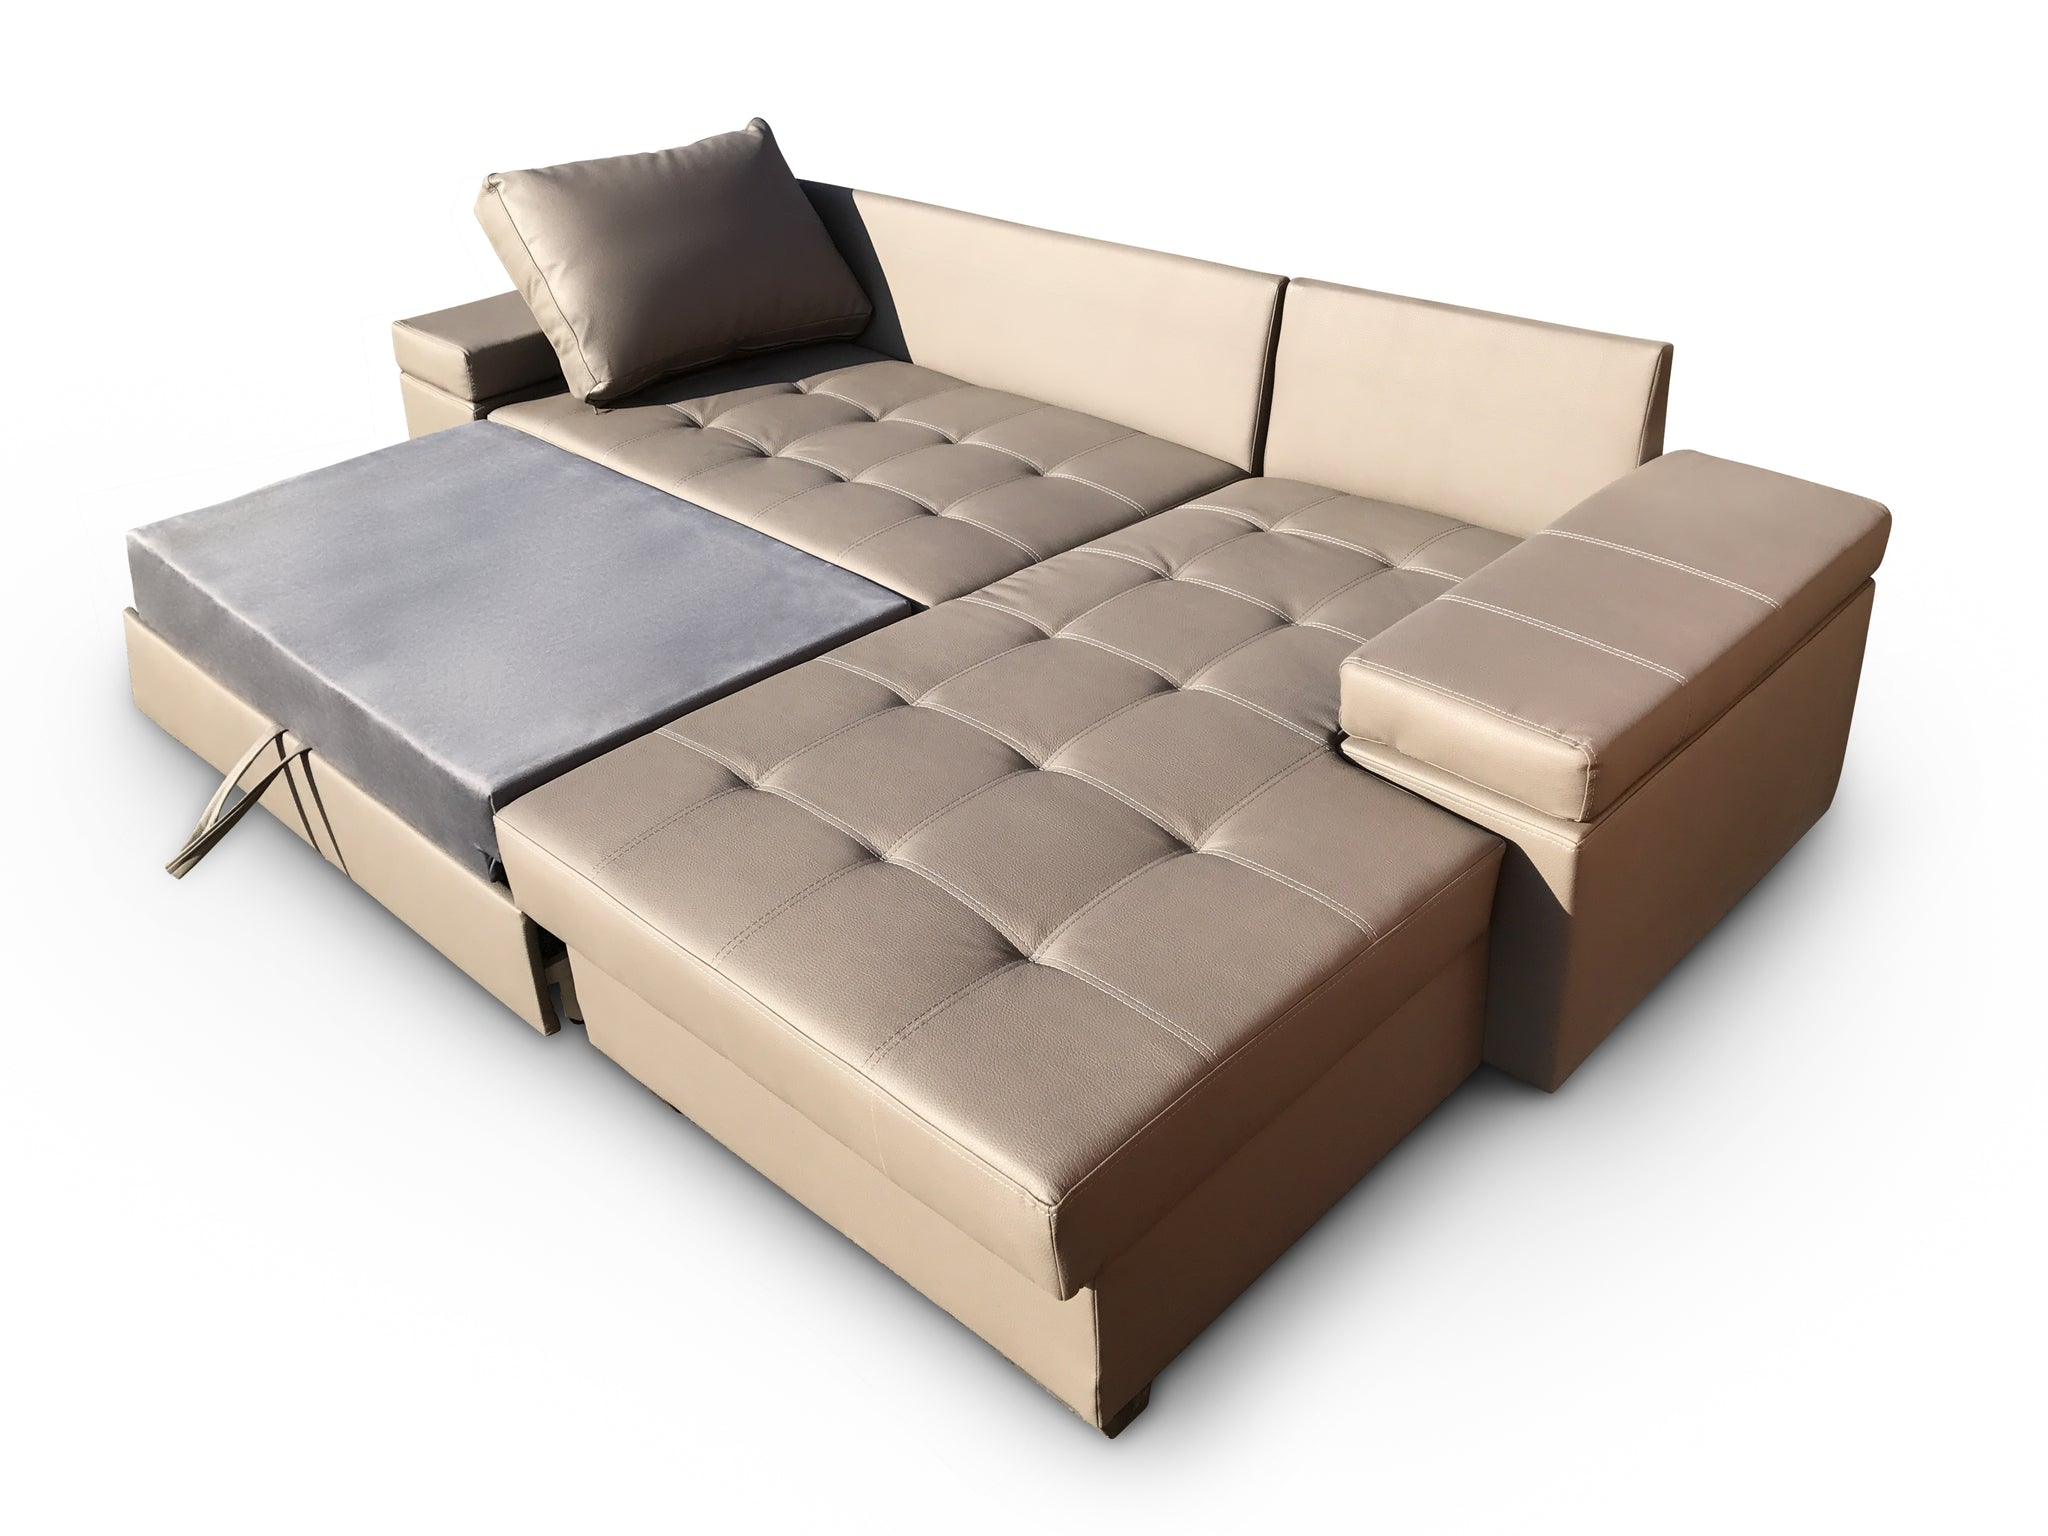 b lightpiece copia divano sofas products bed flexform sofa en componibile sectional